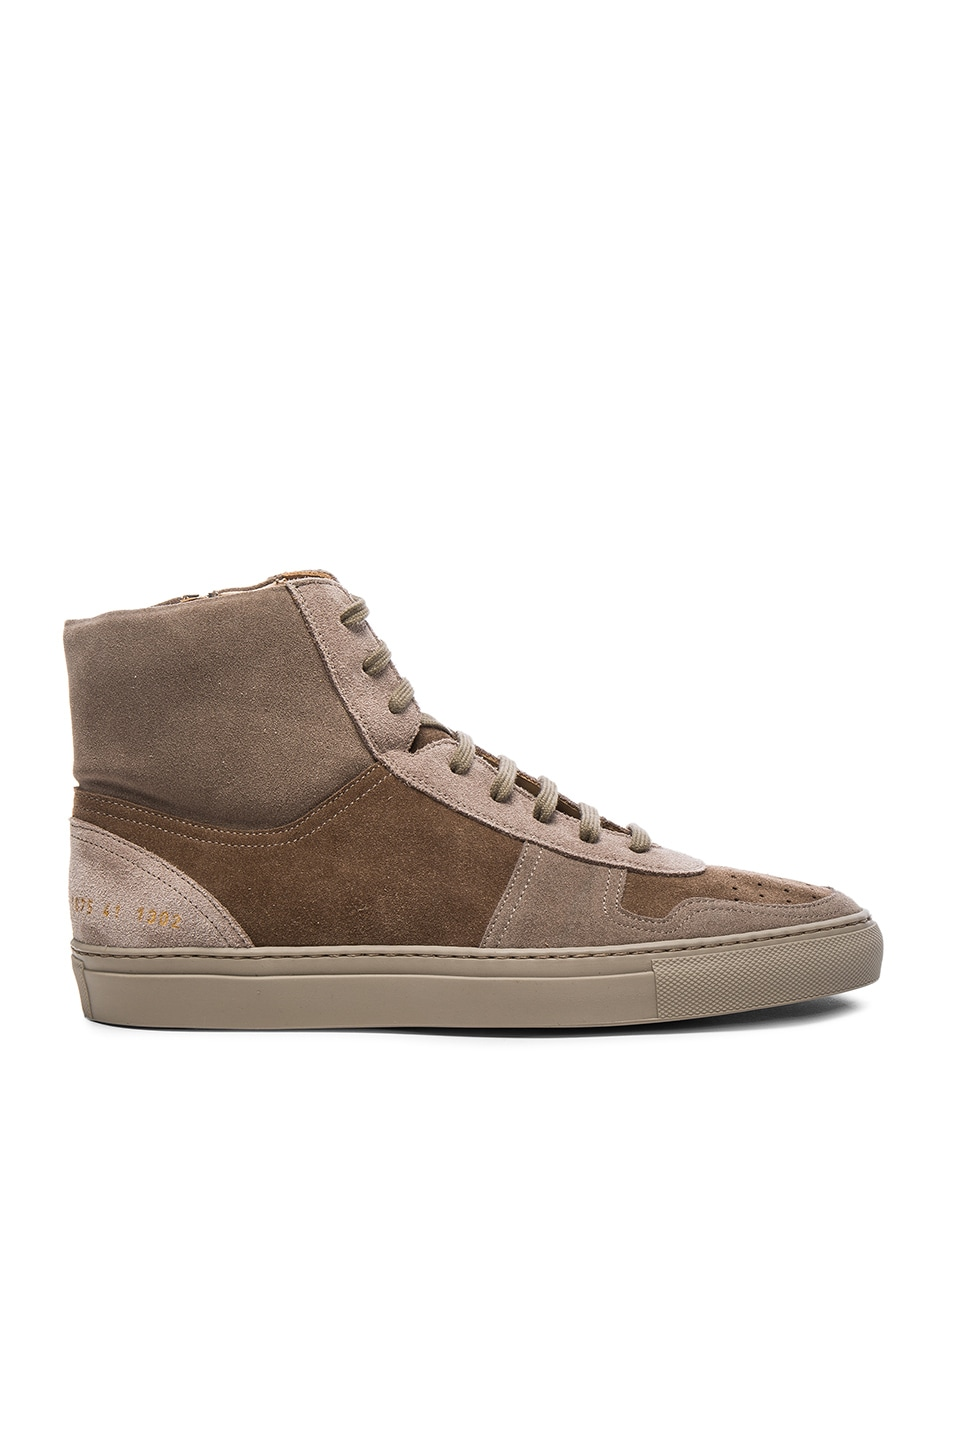 268f2b811f93a9 Image 2 of Robert Geller x Common Projects Suede High Top Sneakers in Taupe